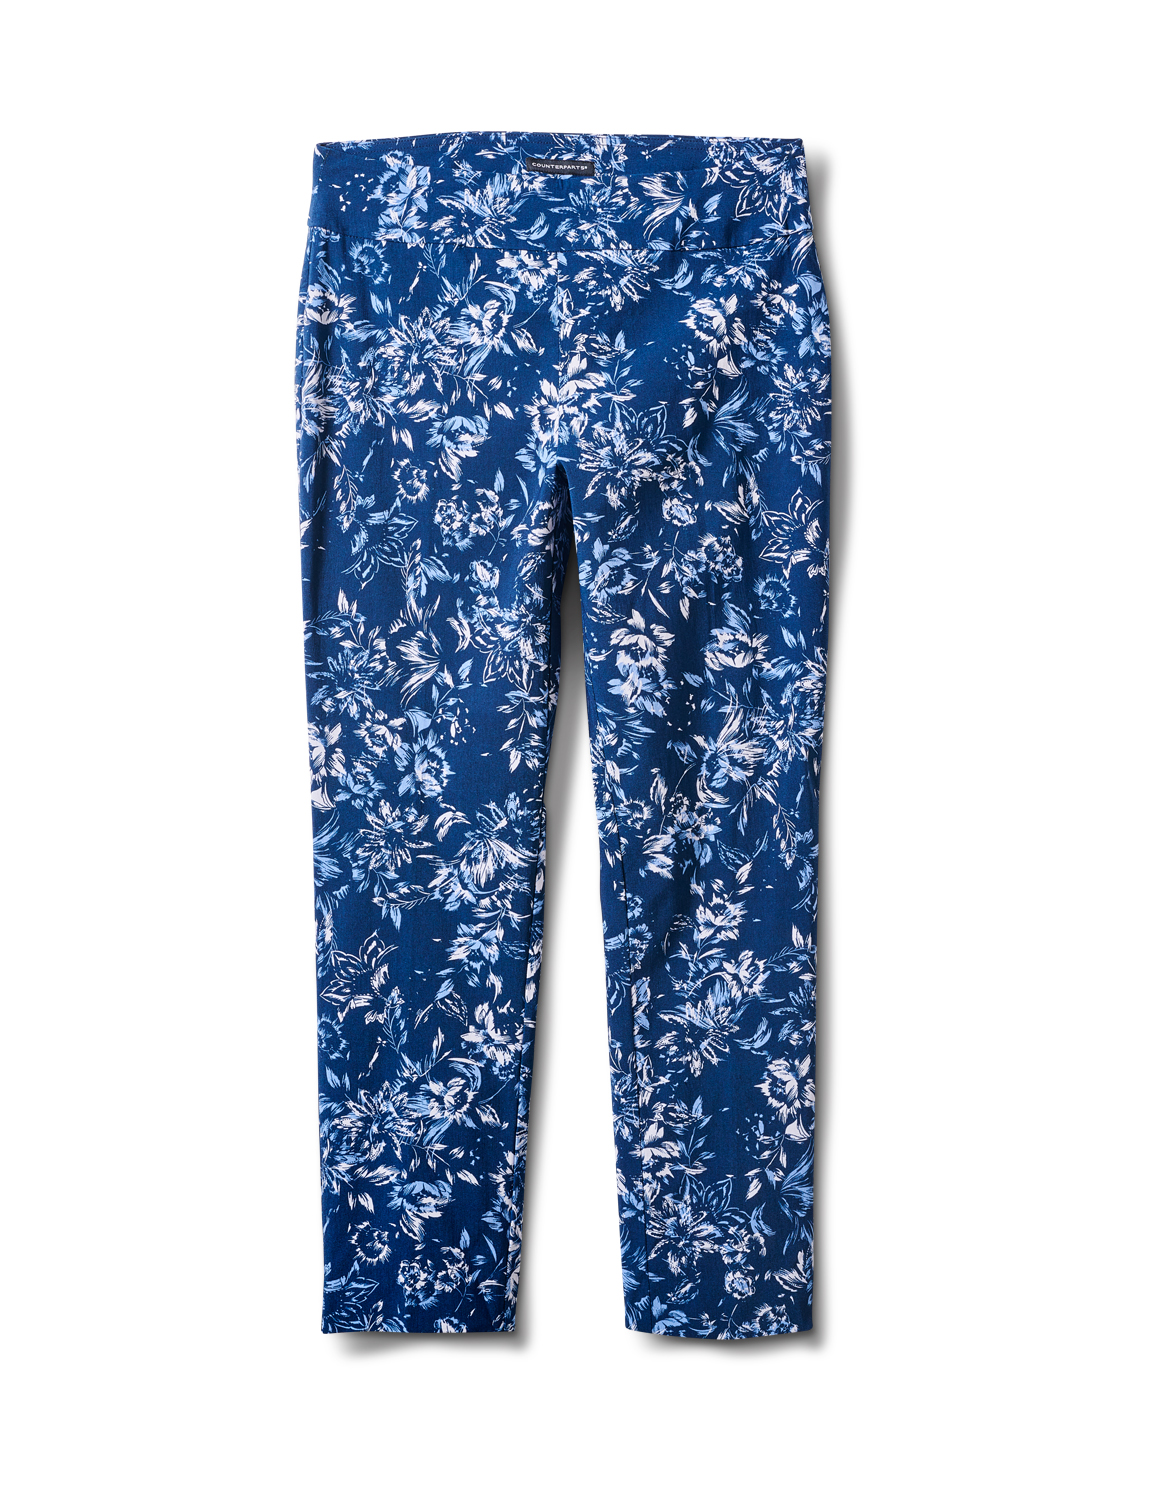 Pull On Floral print Ankle Pants -Blue Floral - Front